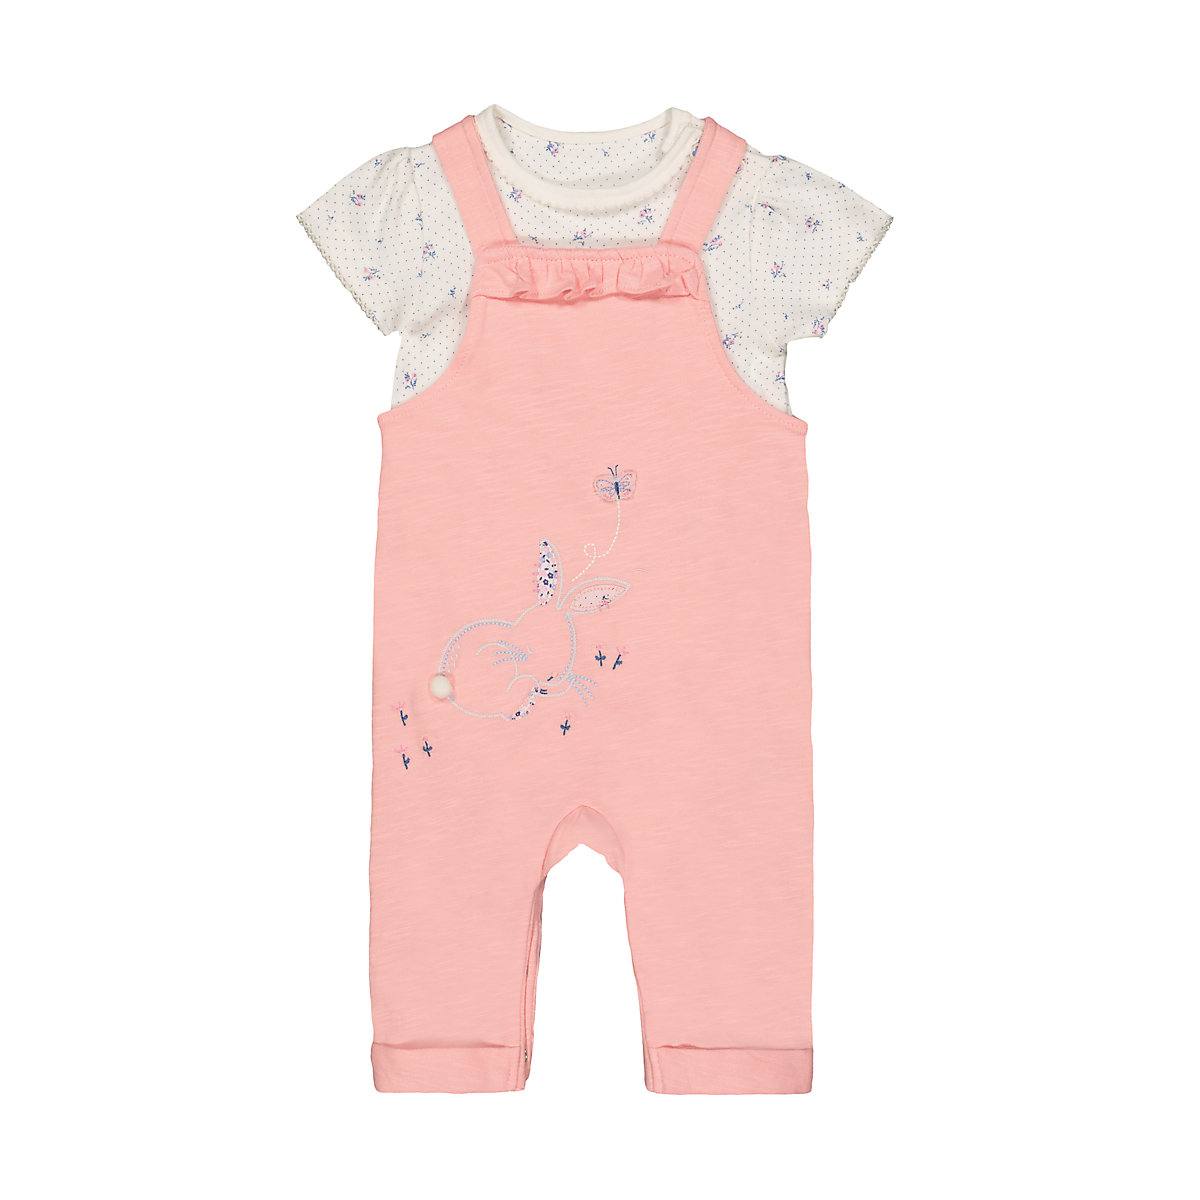 light pink bunny and flowers bodysuit and dungarees set